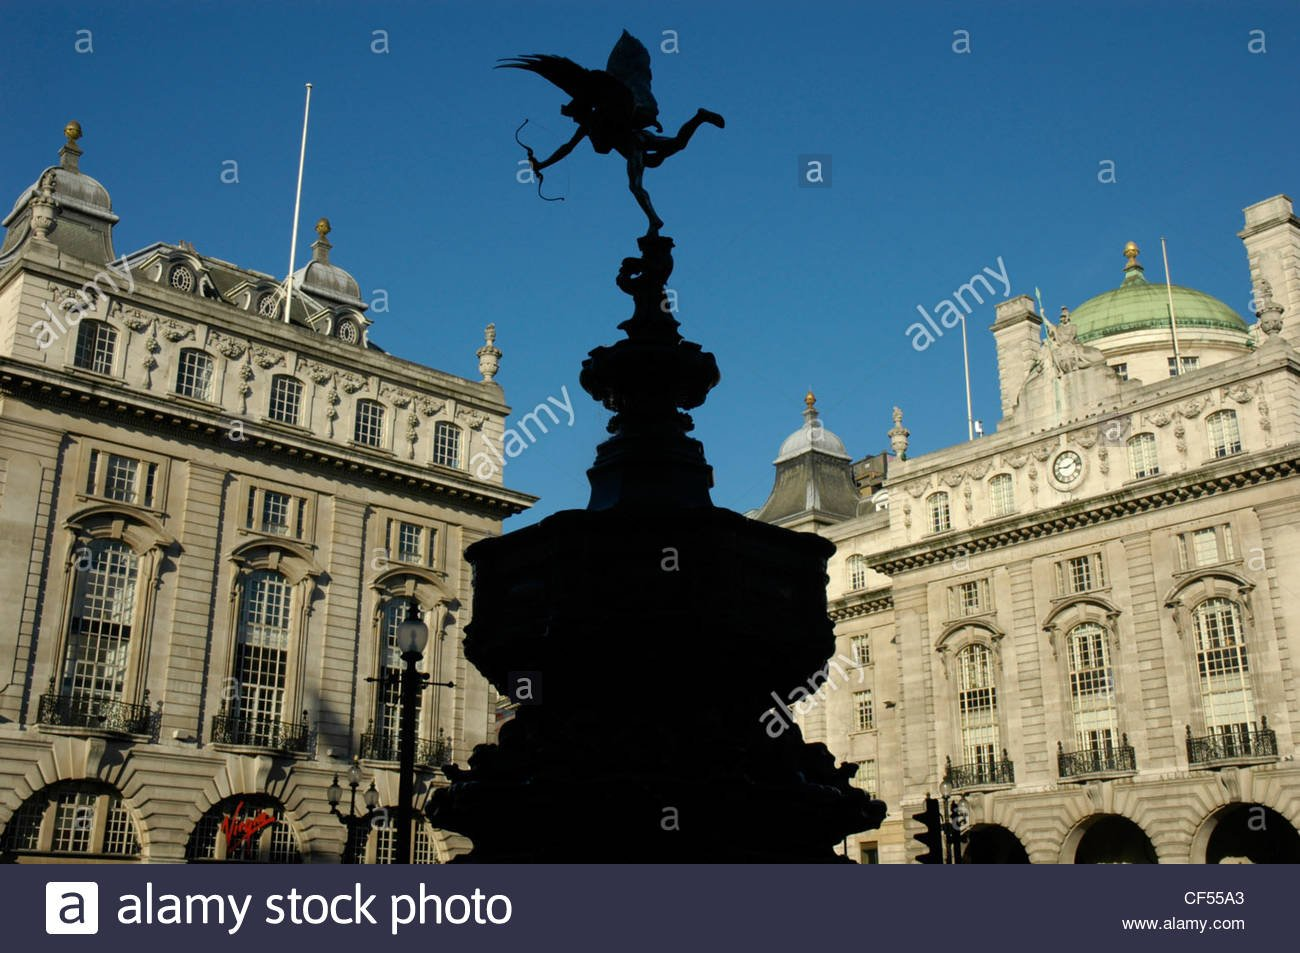 Silhouette of the Eros statue with victorian buildings in the 1300x953